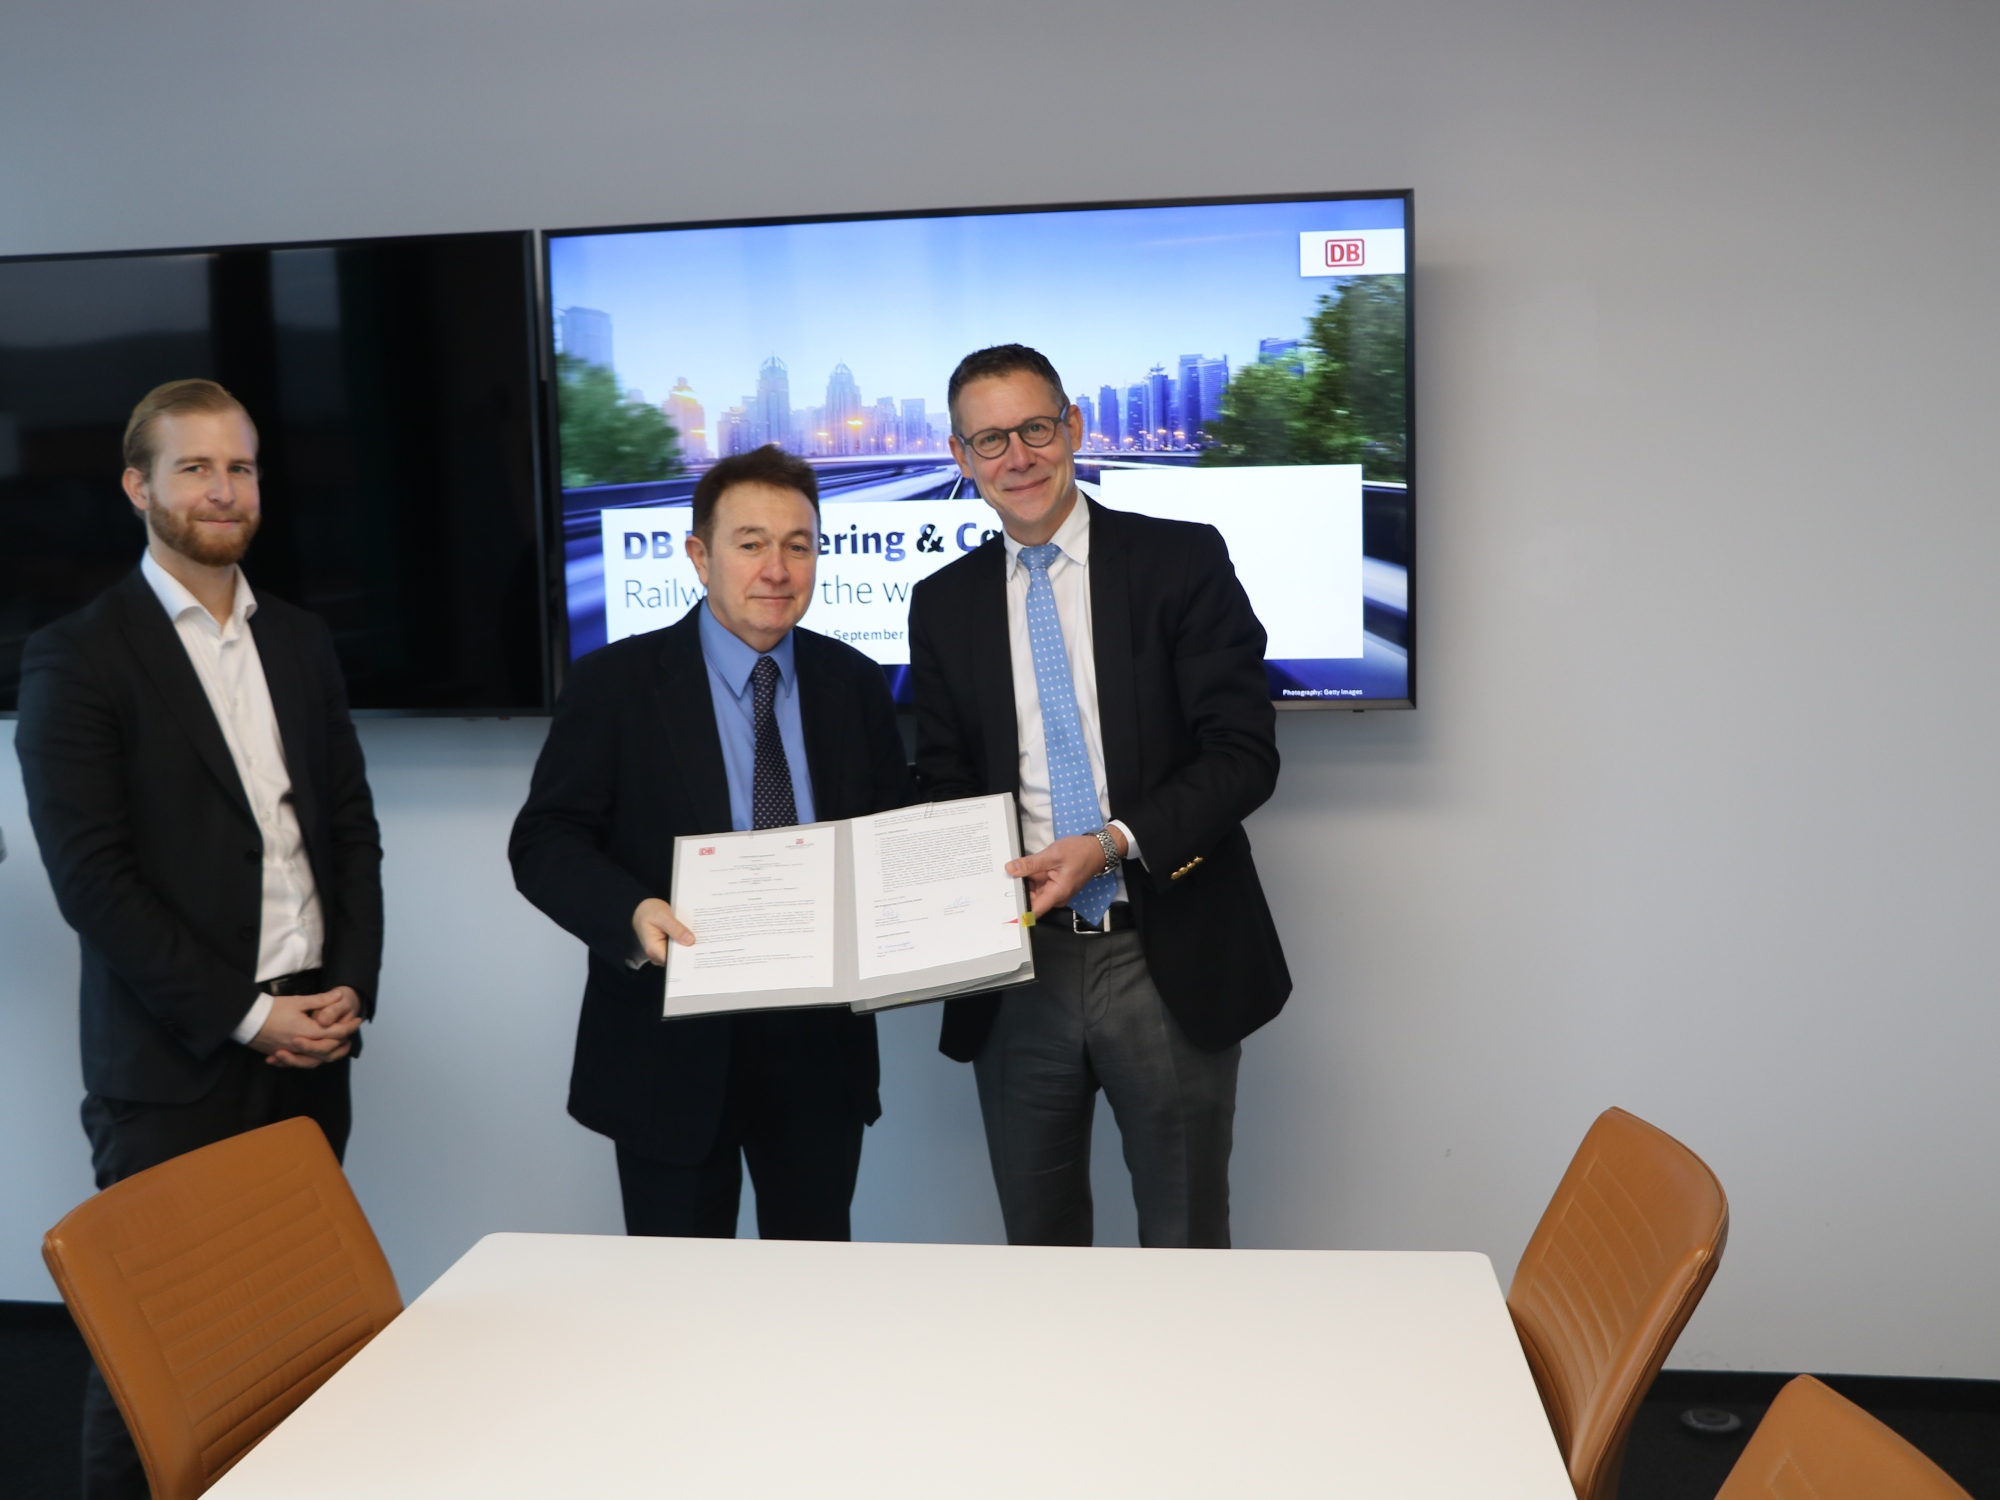 Abdullah Gül University, Deutsche Bahn, AGU, DB, Berlin headquarters, partnership agreement, signing ceremony